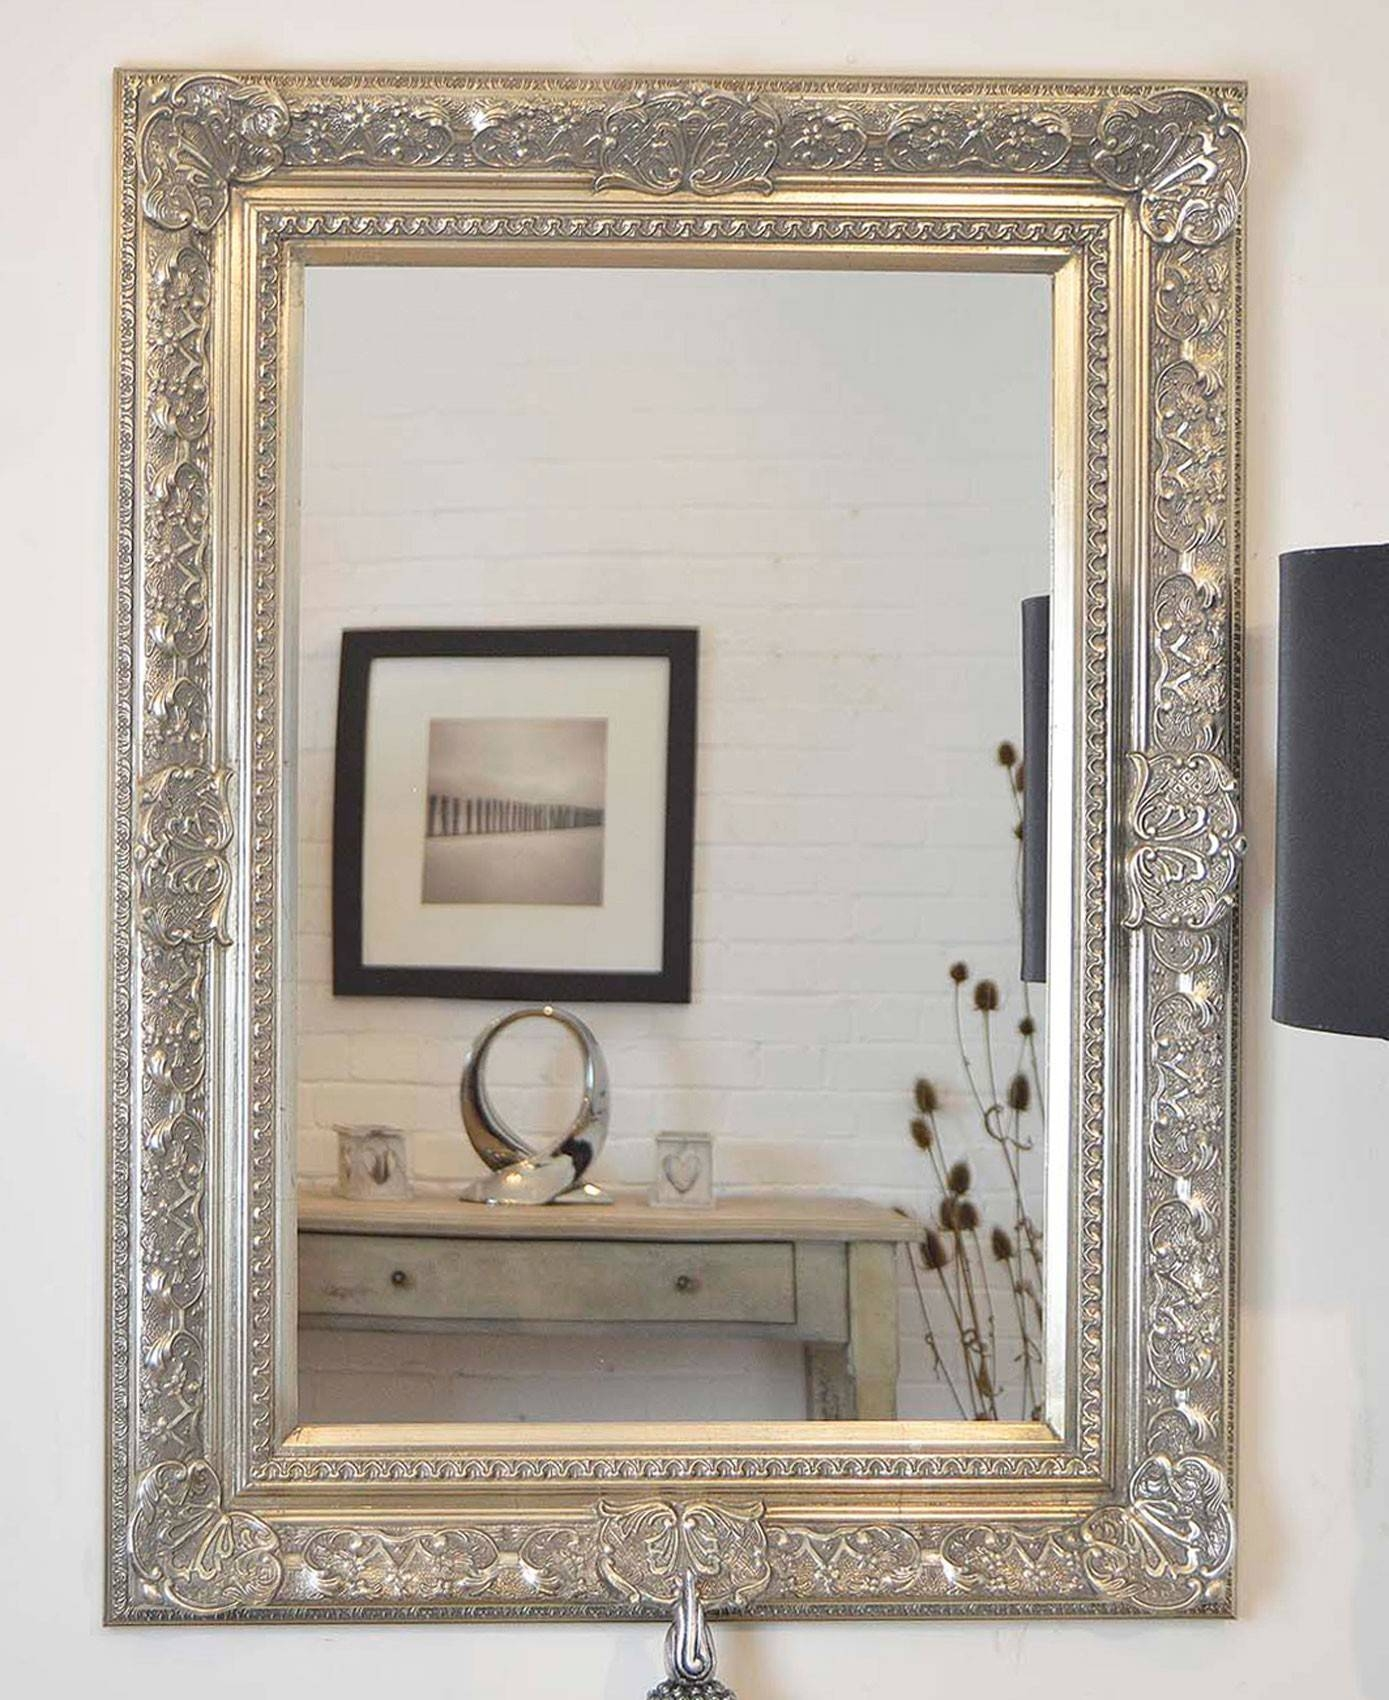 Cheap Large Wall Mirrors 79 Breathtaking Decor Plus Large Wall within Big Ornate Mirrors (Image 7 of 15)